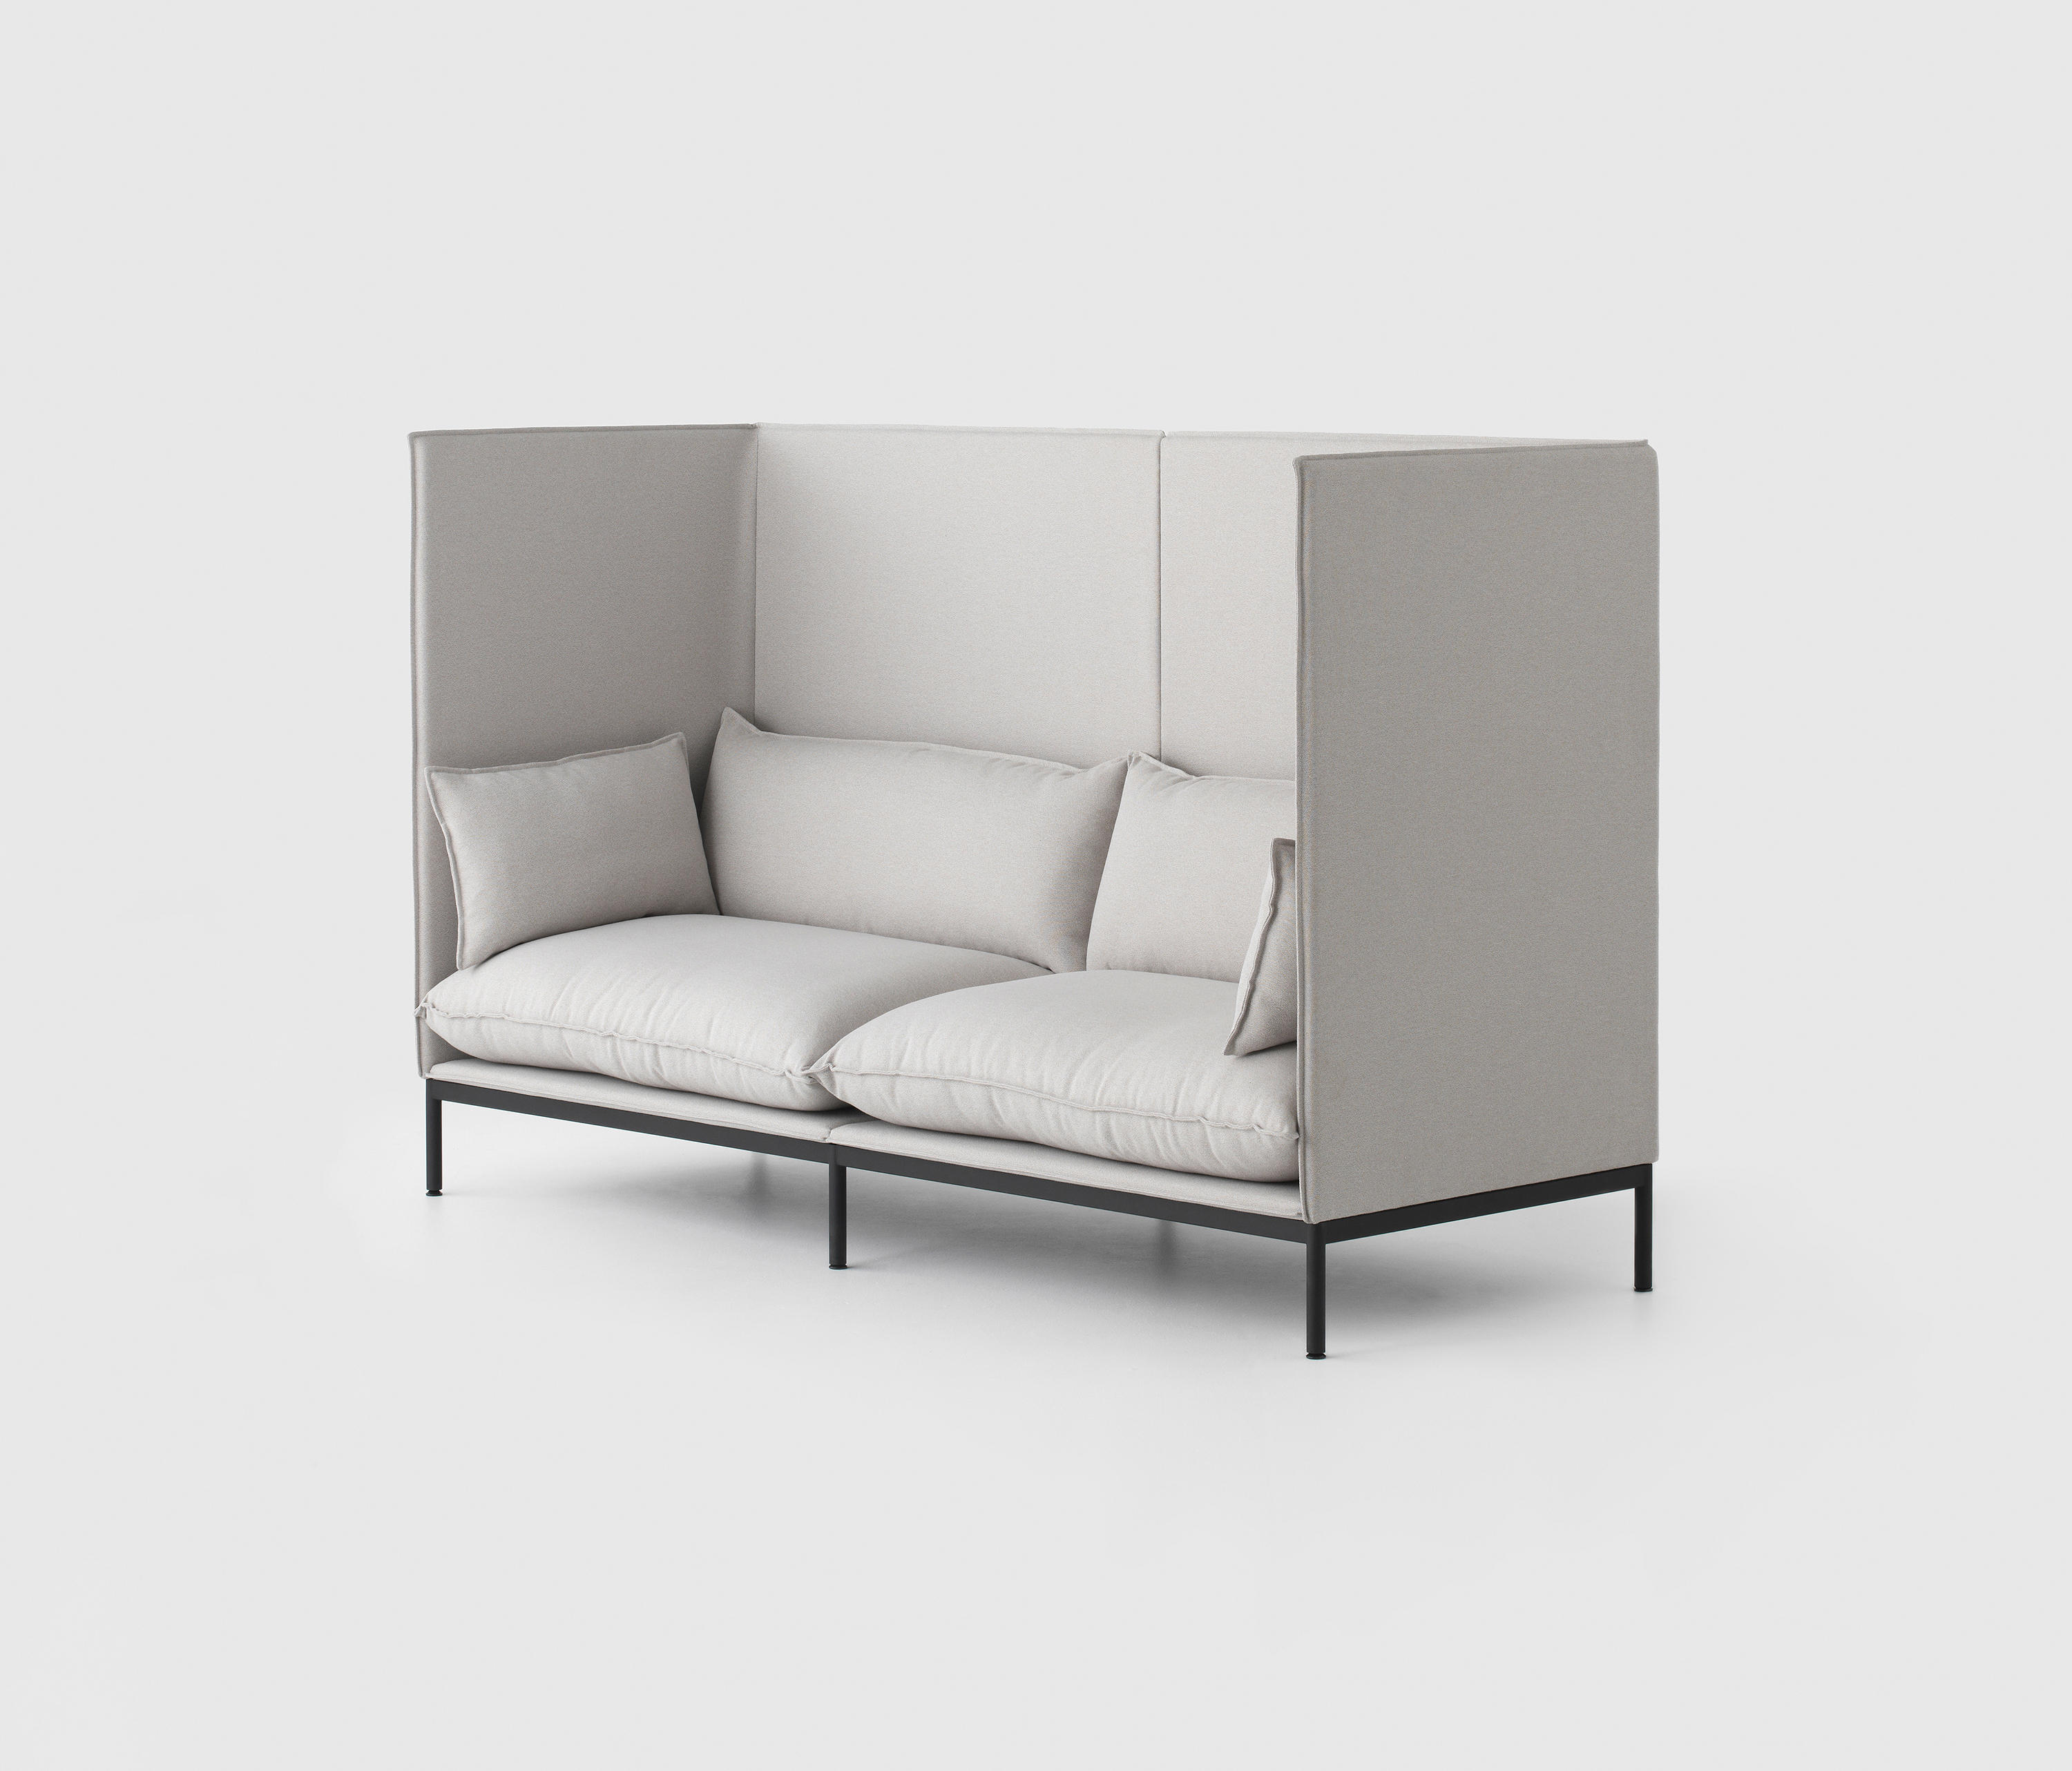 CAROUSEL SOFA - HIGH BACK - Sofas from Resident | Architonic